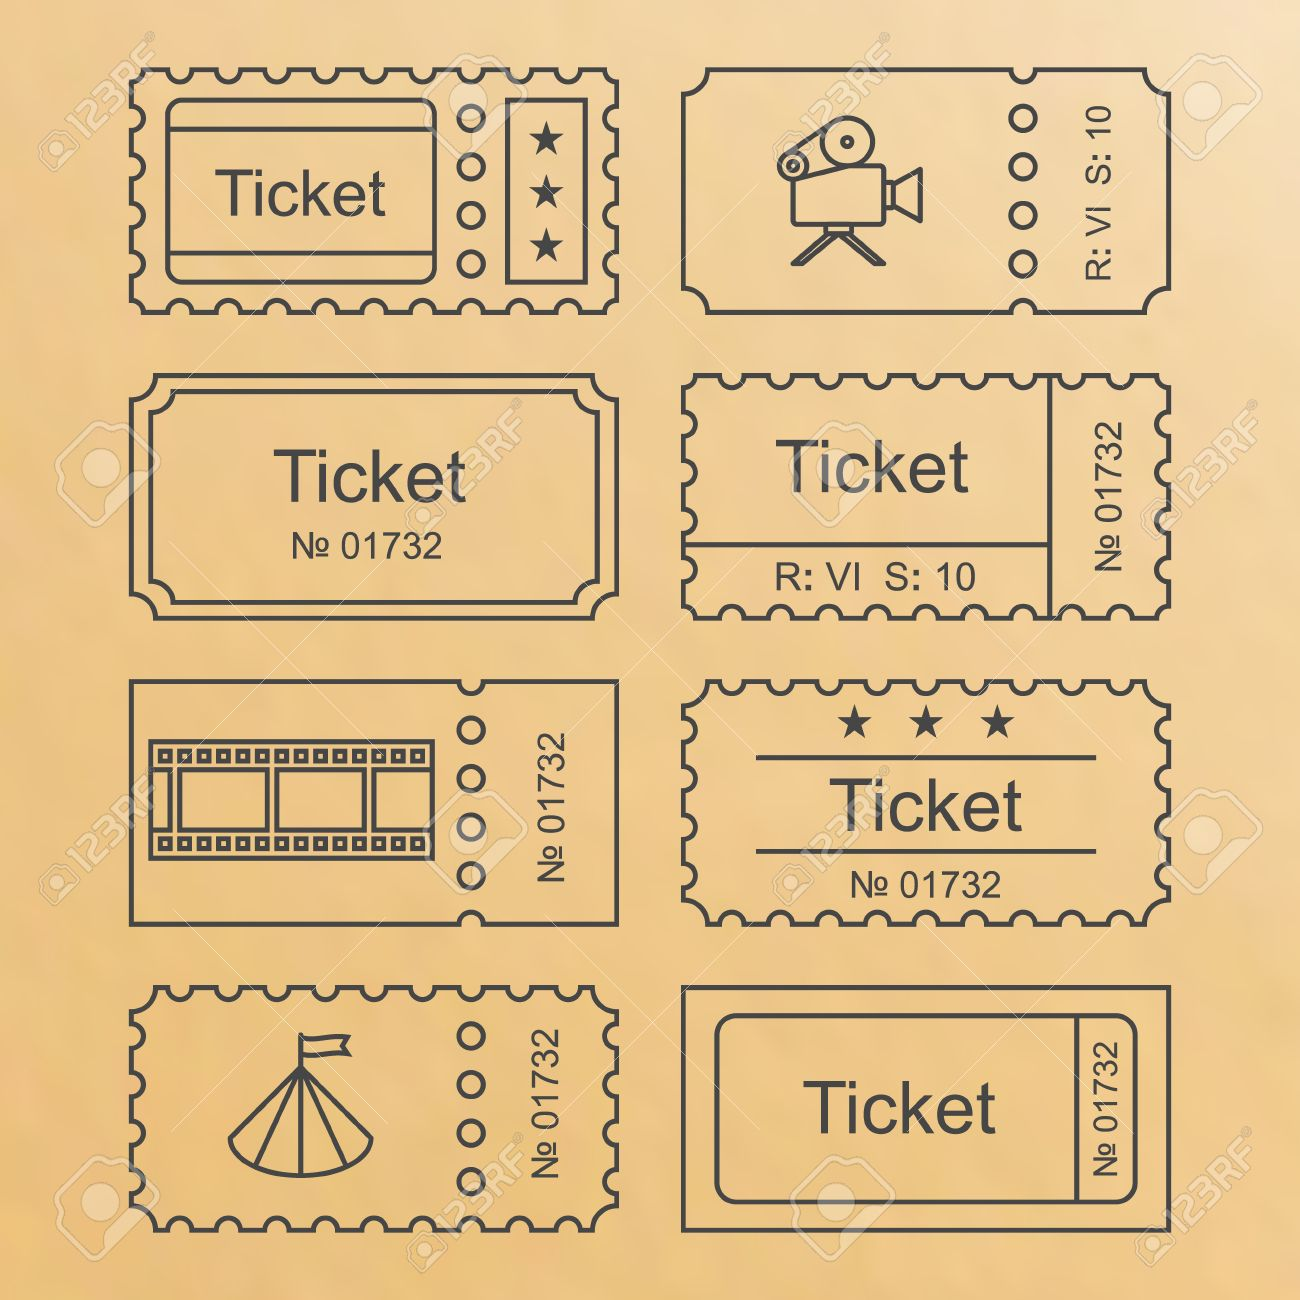 ticket icon in the outline style ticket vector illustration ticket icon in the outline style ticket vector illustration ticket stub isolated on a